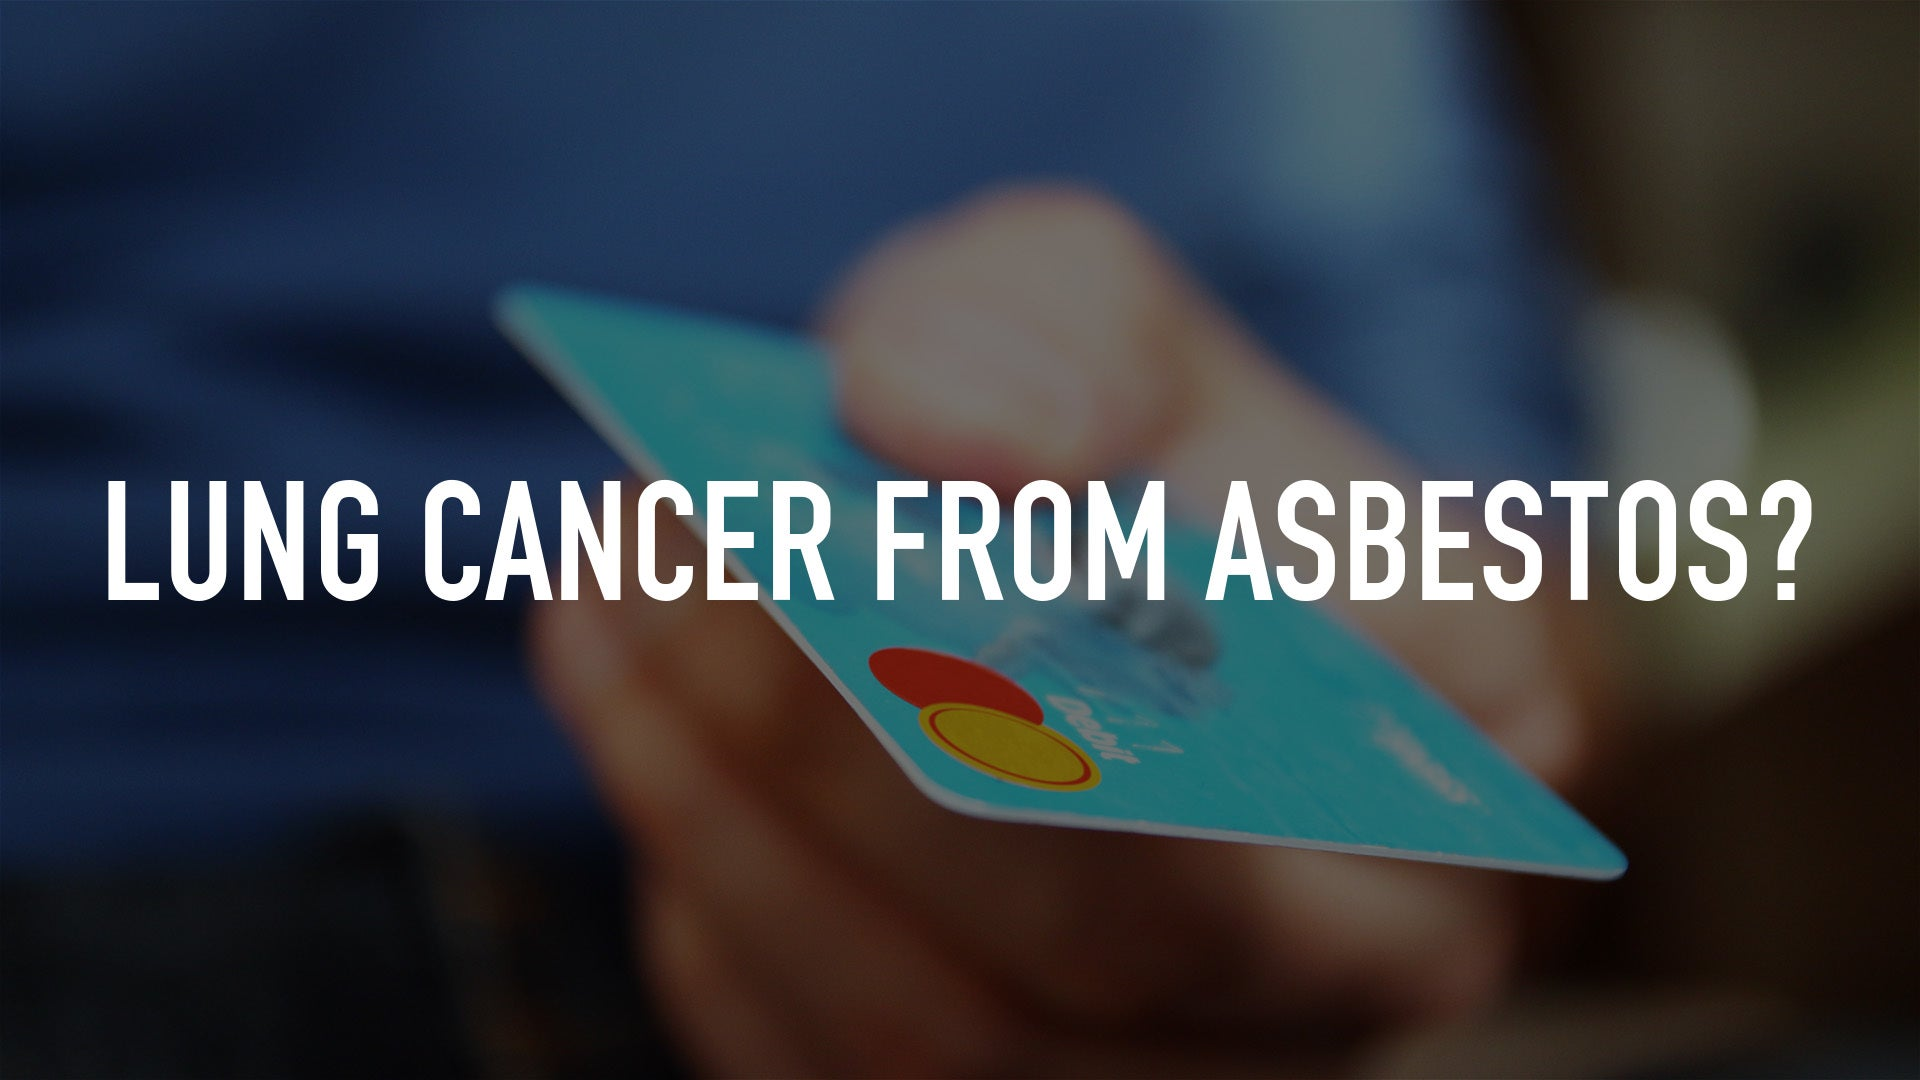 Lung Cancer From Asbestos?